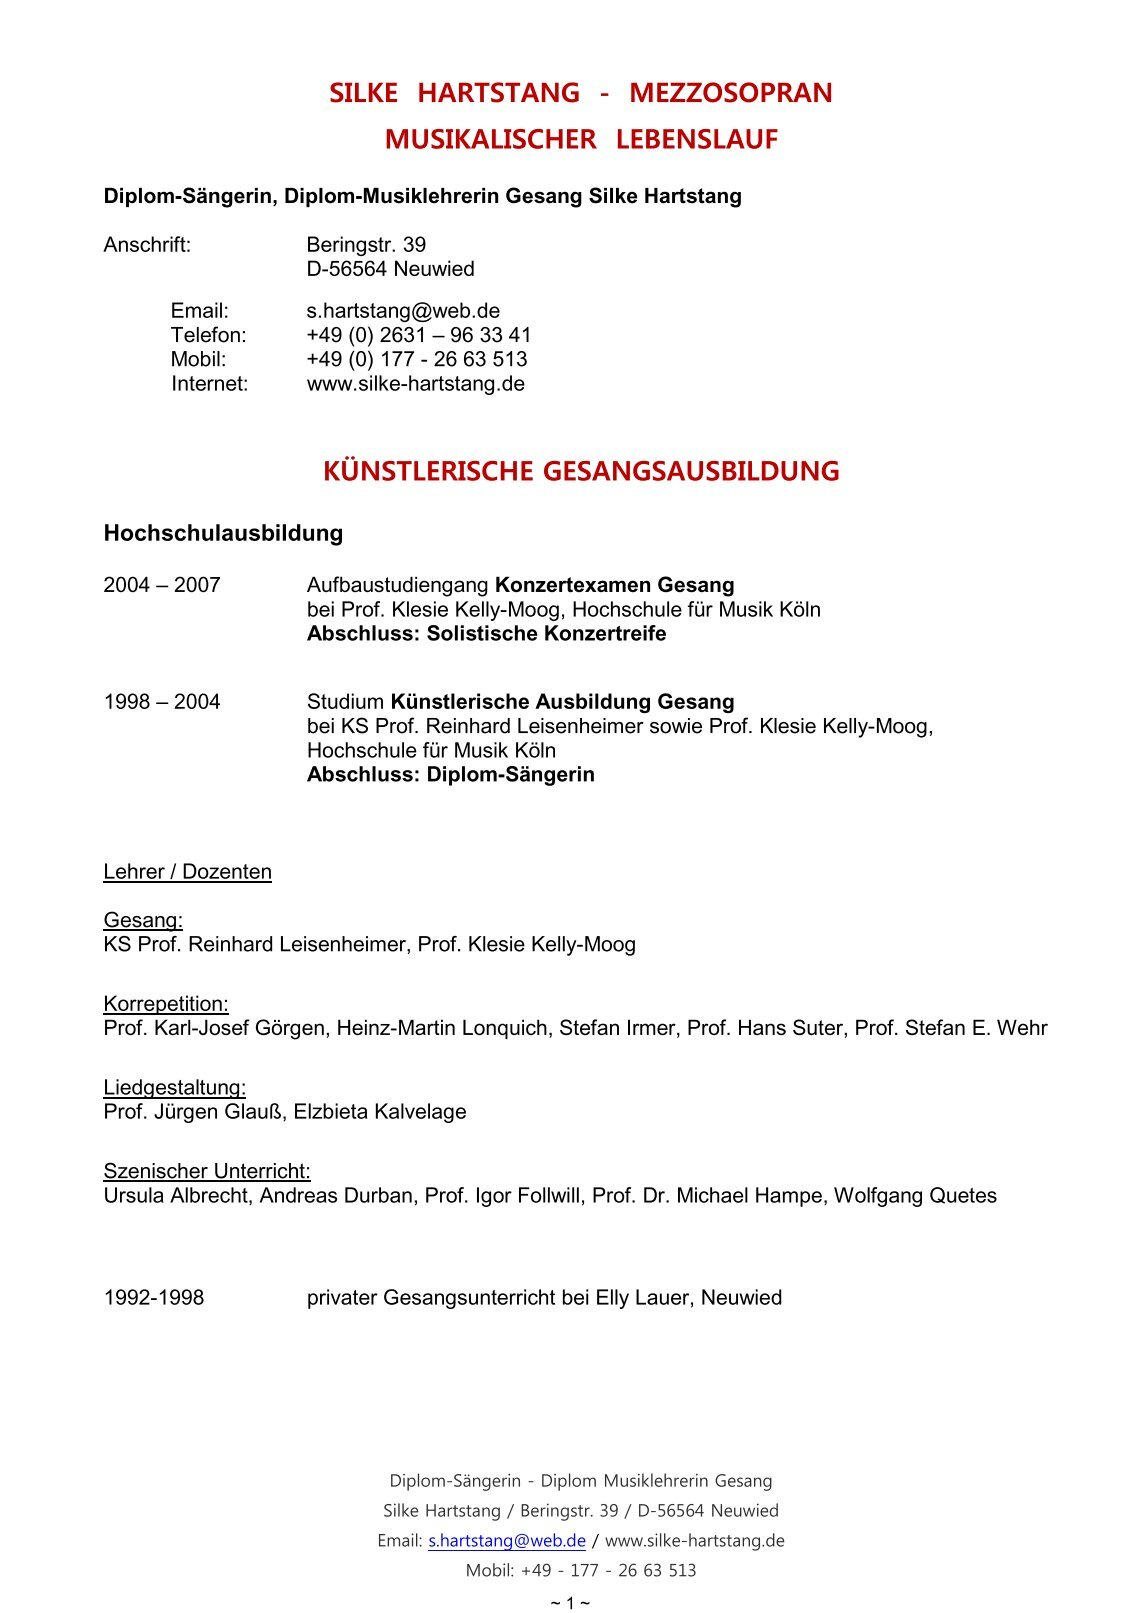 Fein Lebenslauf Pdf Proben Fotos - Entry Level Resume Vorlagen ...